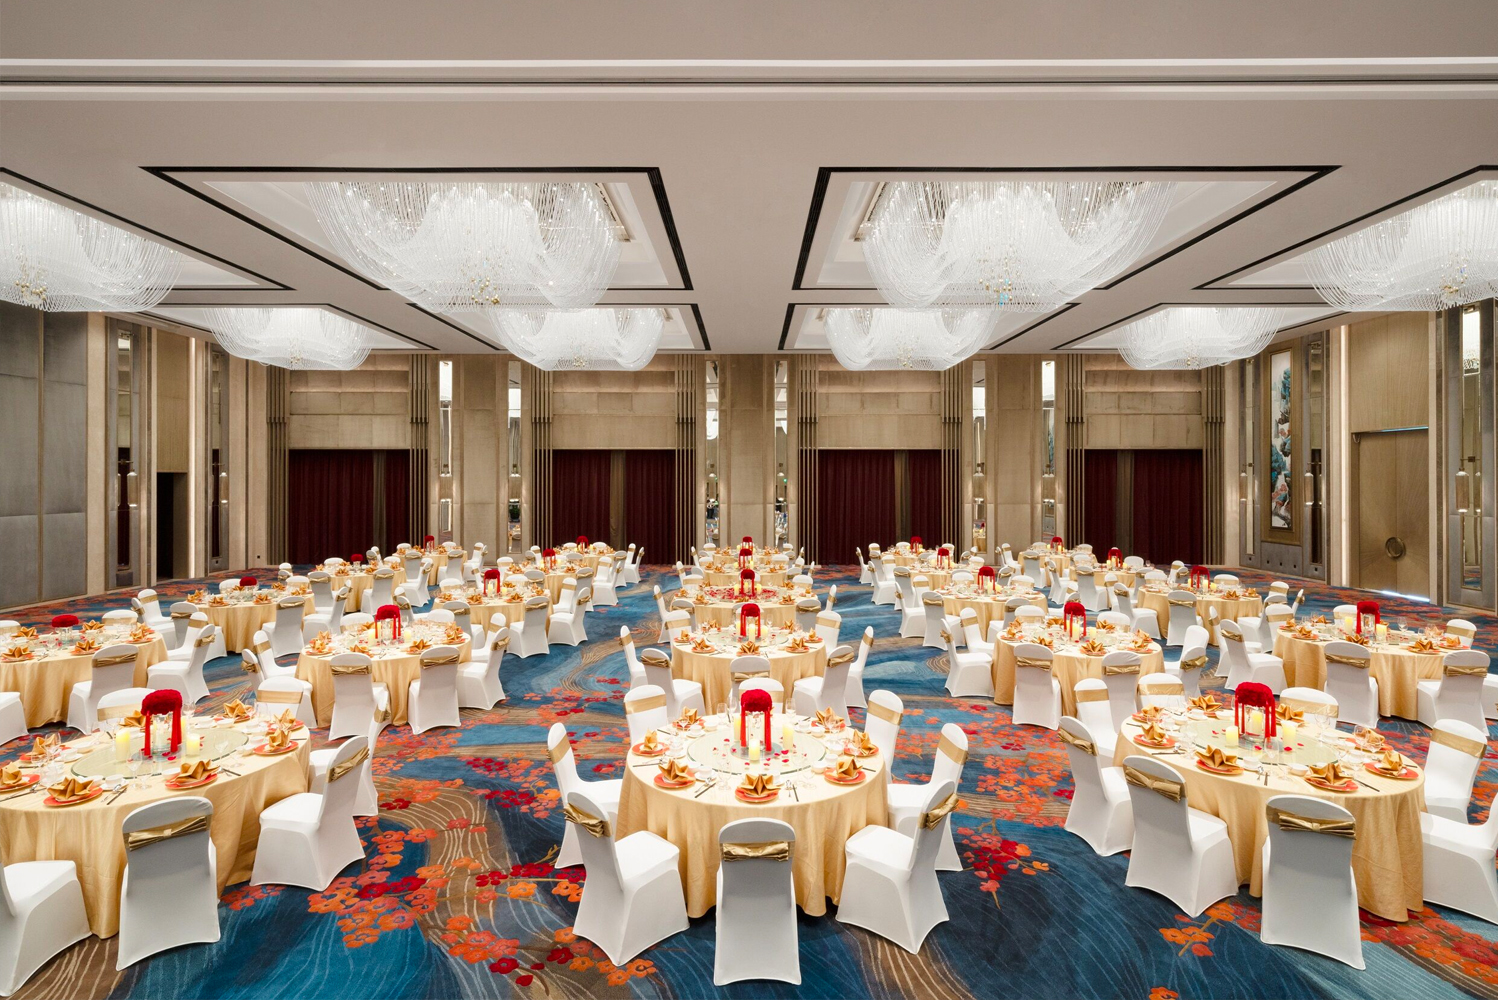 For events, Shangri-La Hotel, Suzhou Yuanqu has two pillarless ballrooms of 1,000 and 384 square meters (about 10,763 and 4,133 square feet), respectively.